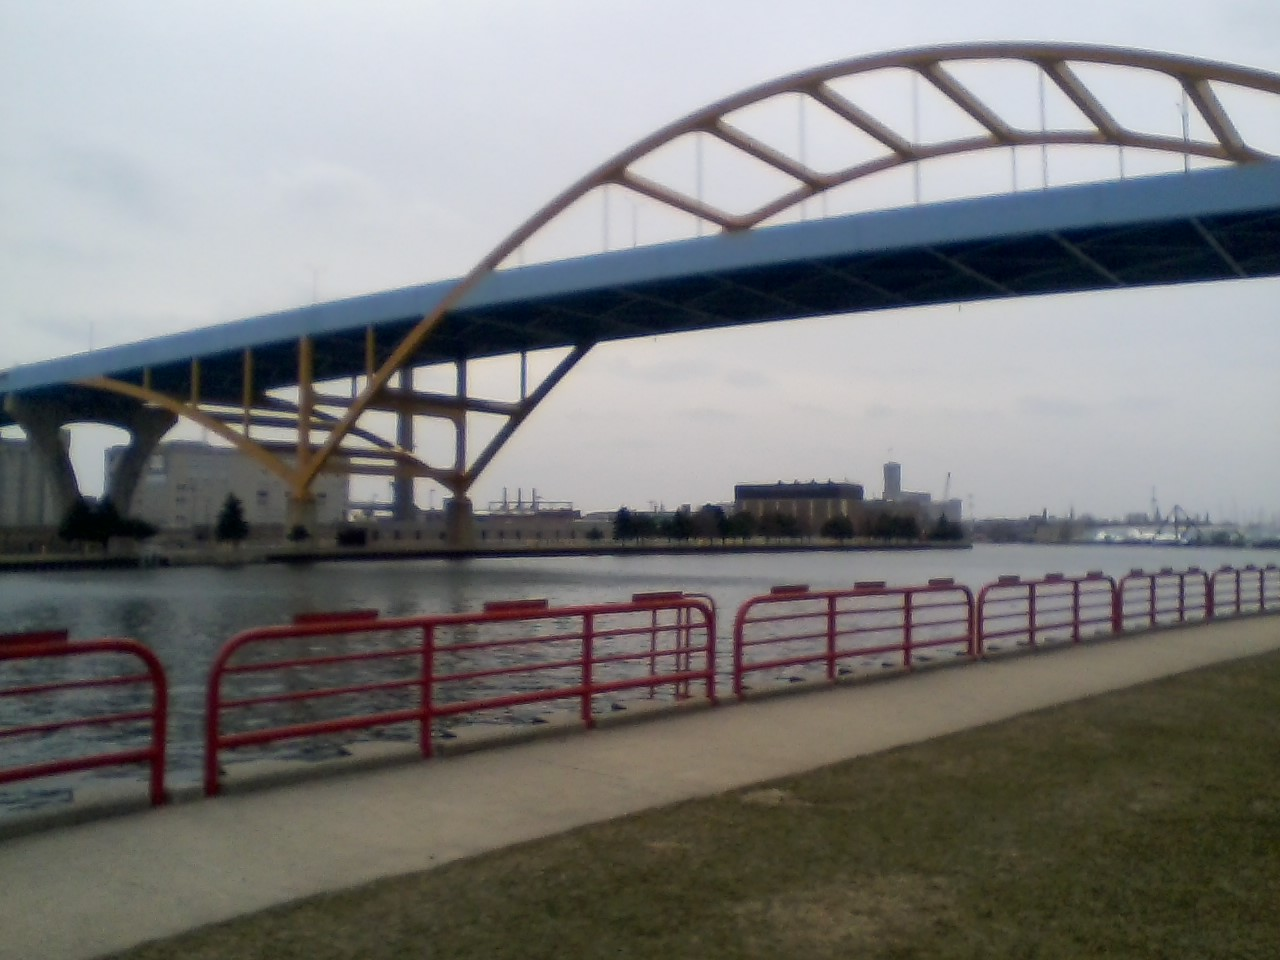 View of the Daniel C. Hoan bridge (I-794)